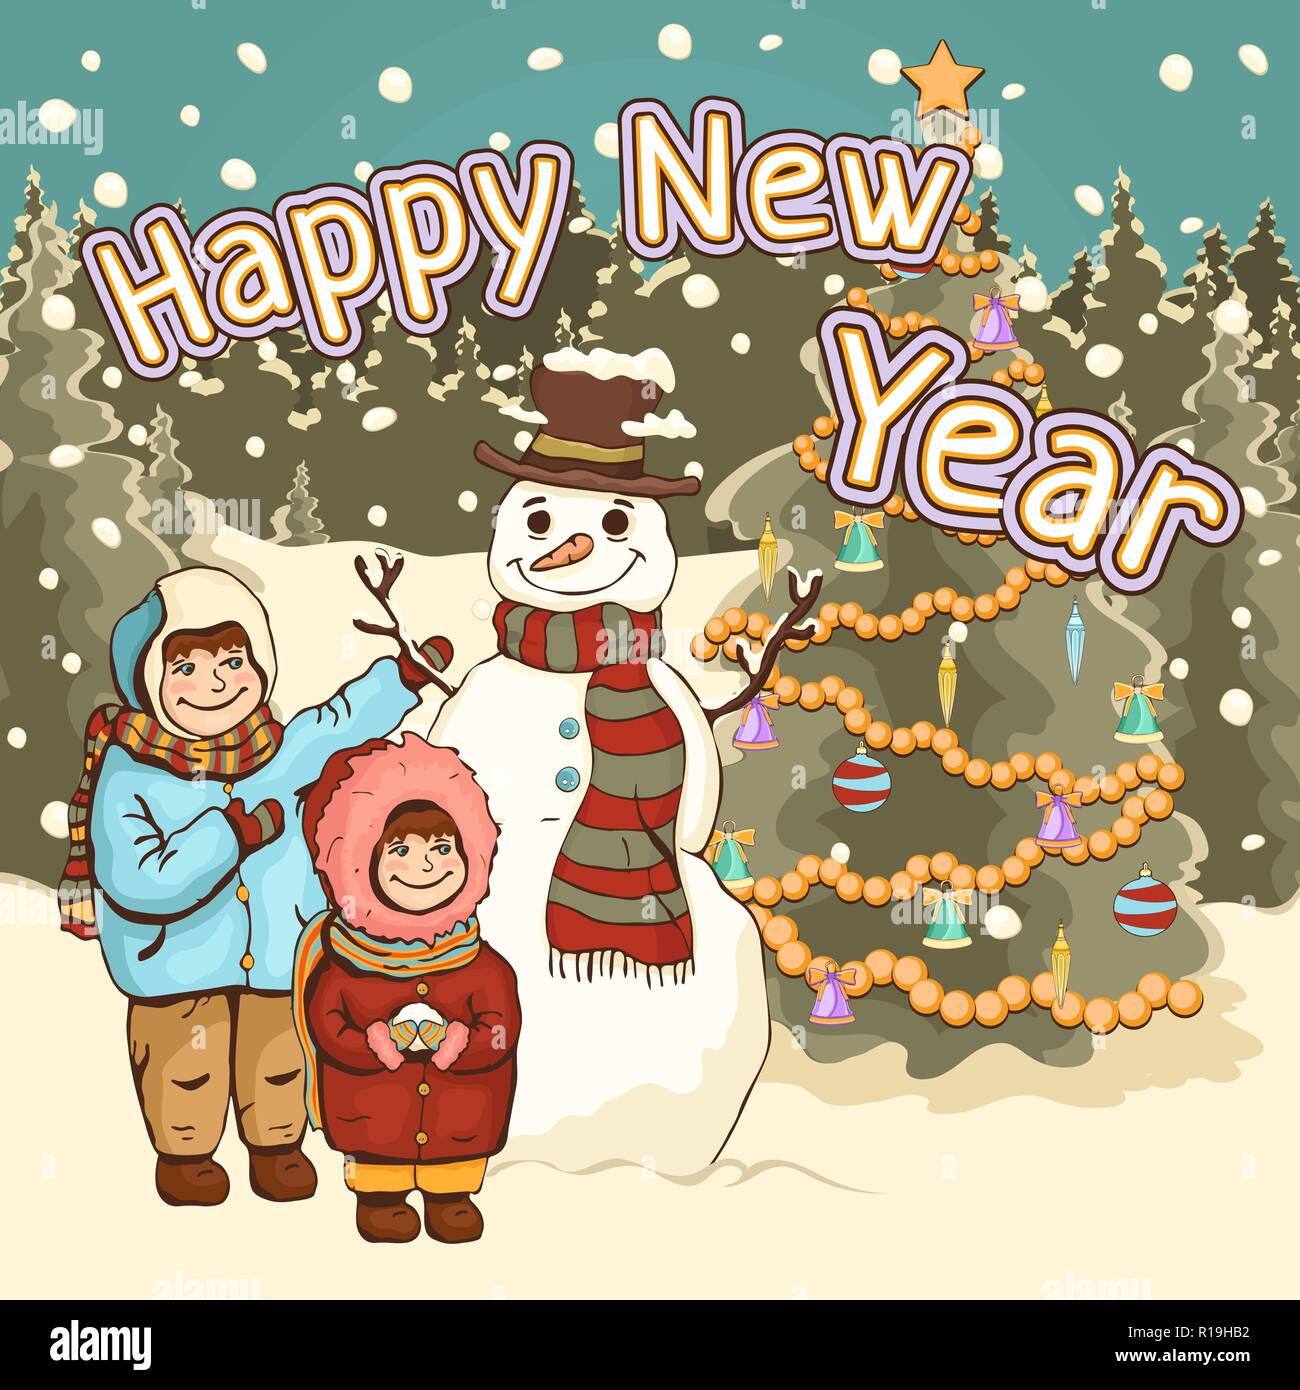 children make snowman happy new year card poster cartoon colorful drawing vector illustration cute boy and girl funny snowman on the background